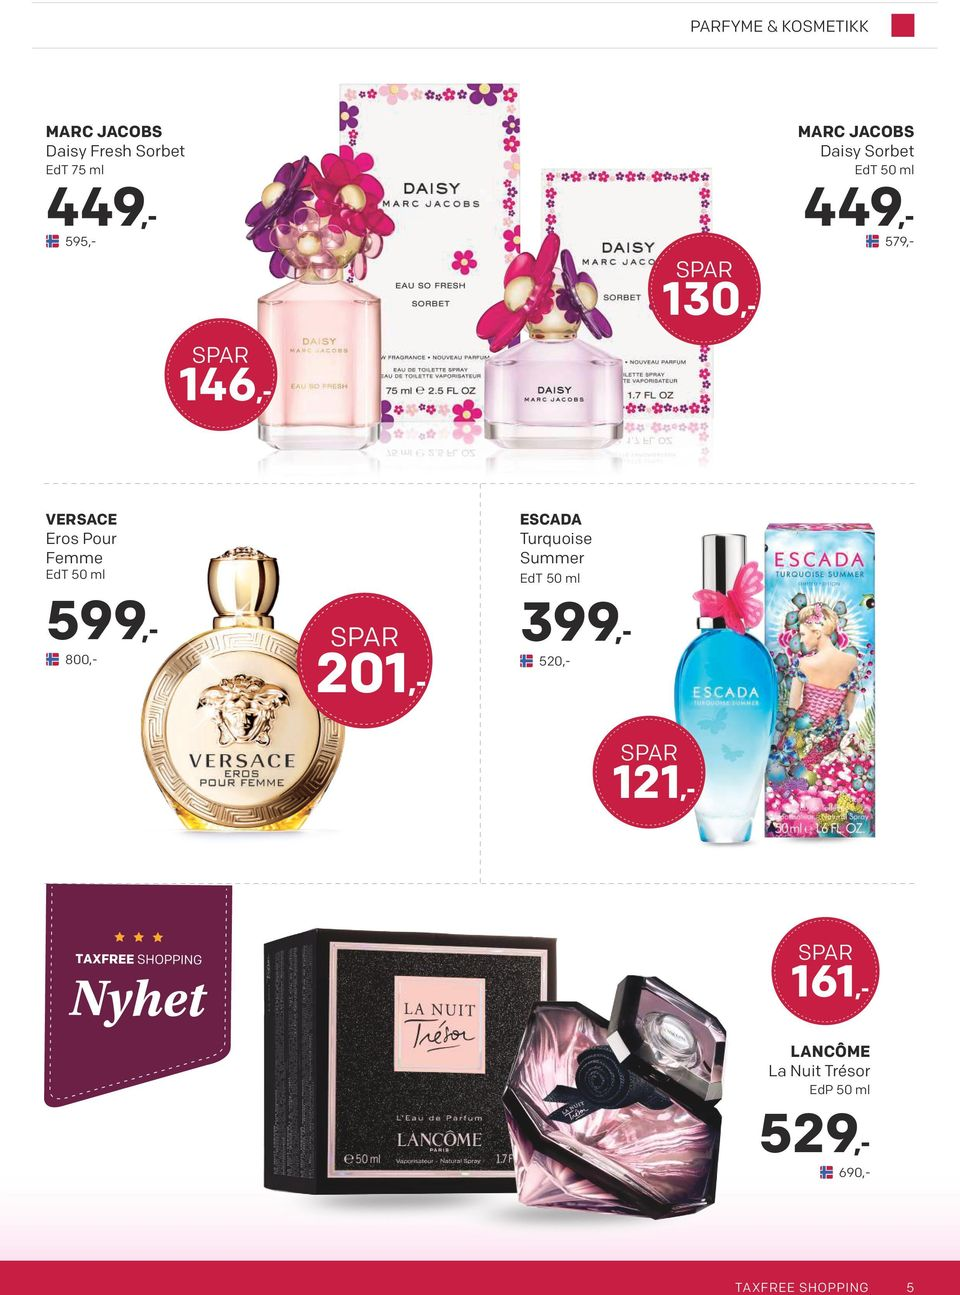 Summer EdT 50 ml 121,- 130,- 201,- 529,- 690,- 599,- 800,- 449,- 579,- 399,-